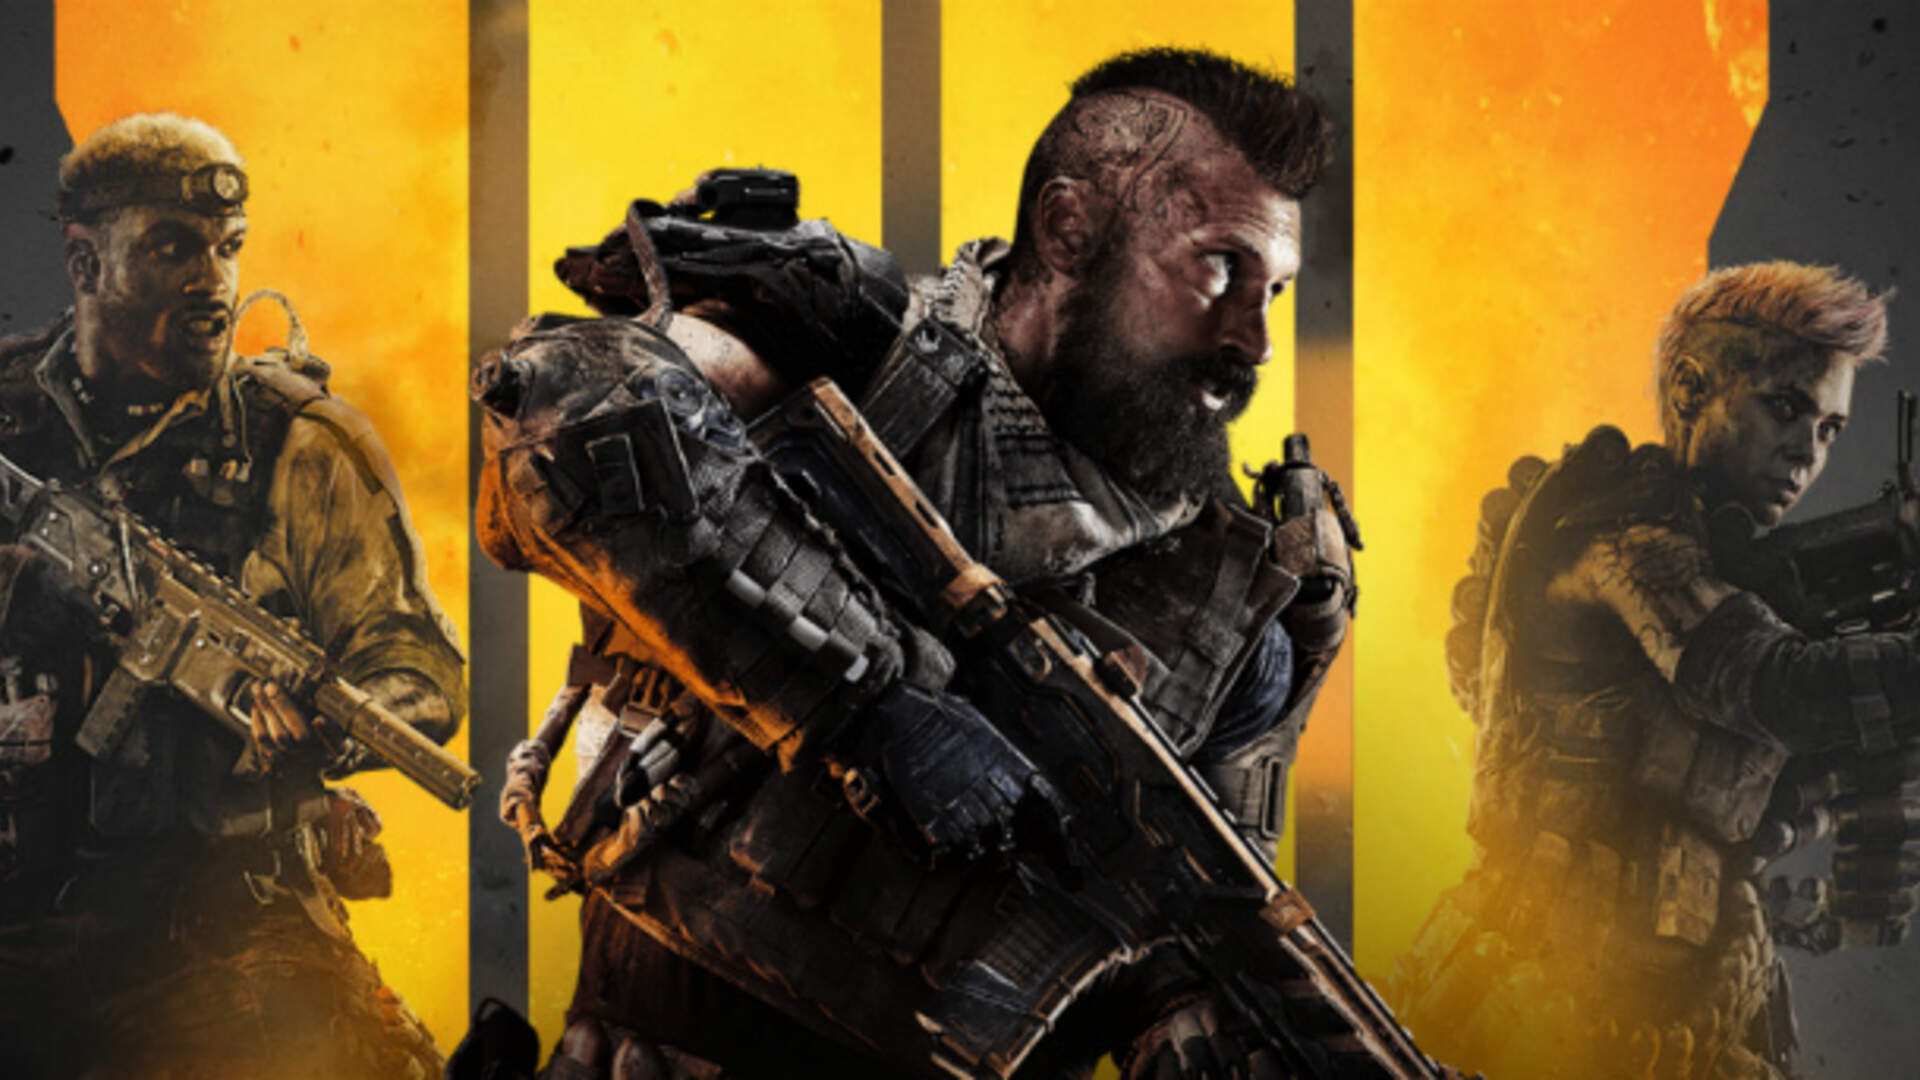 Treyarch Says There are No Plans to Bring Call of Duty: Black Ops 4 to Switch